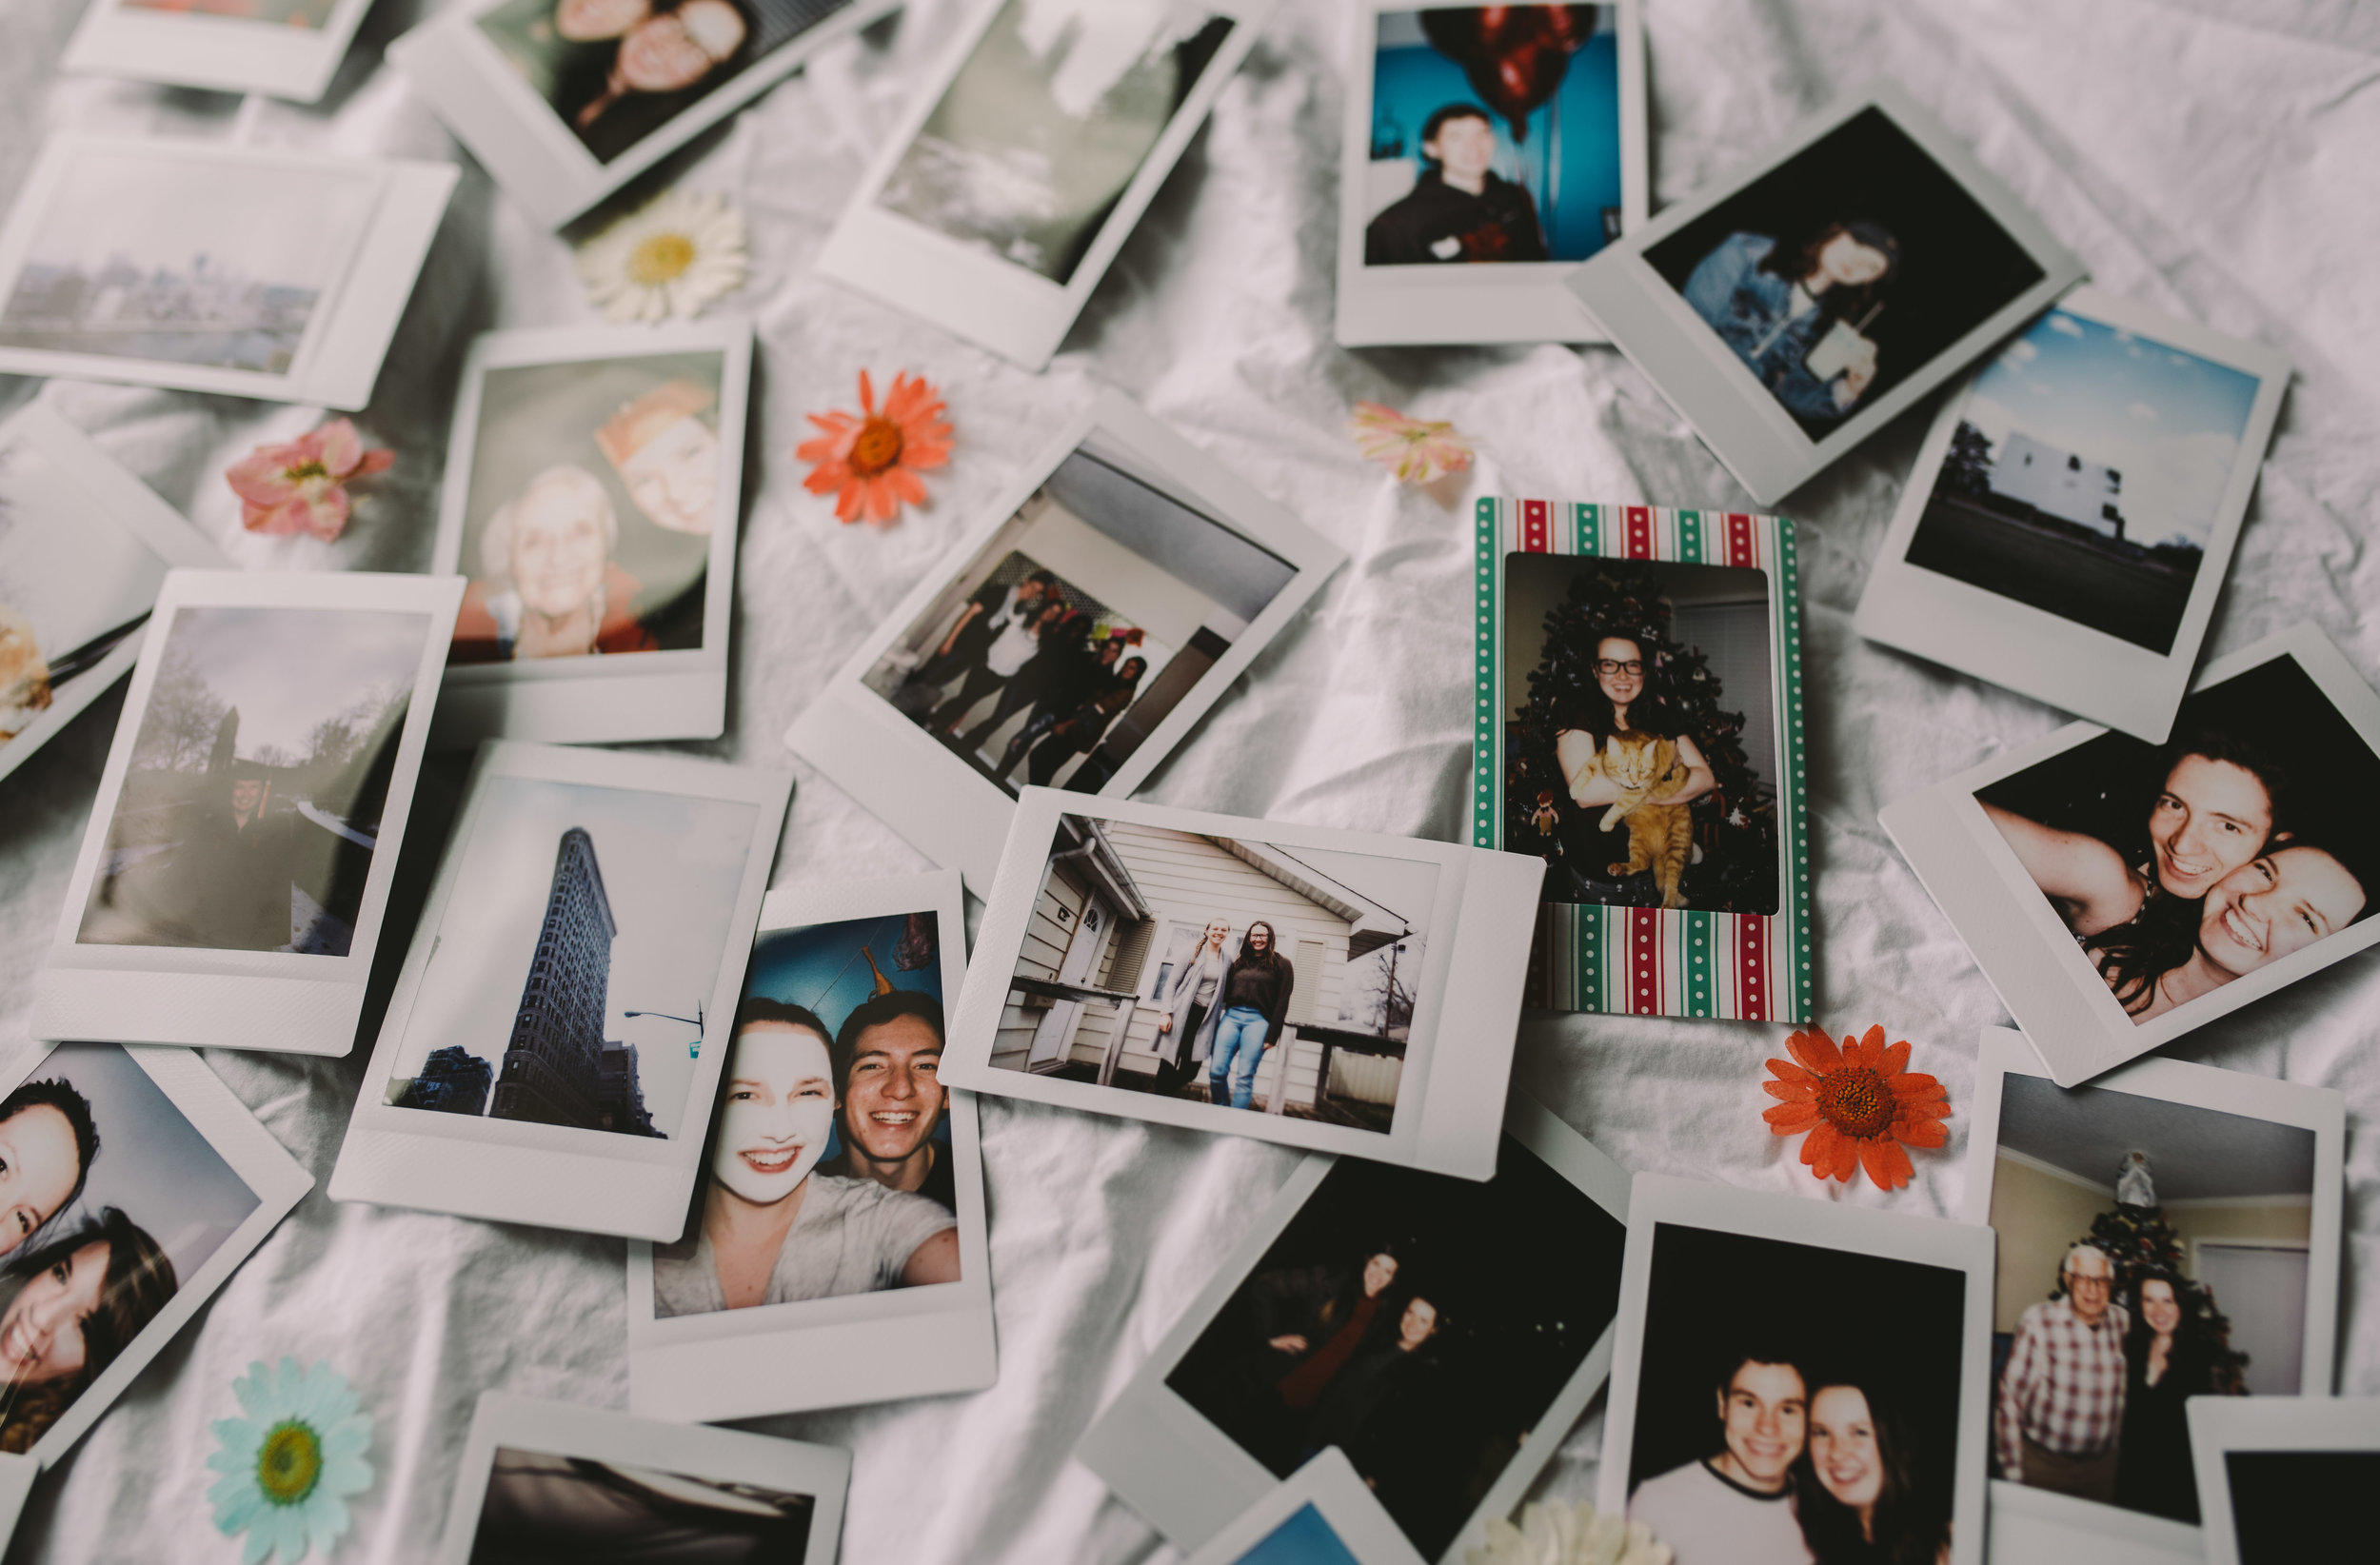 PolaroidMemories_May2018_TempeAZ_Portrait Photography In Tempe Arizona_ArizonaPortraitPhotographer_SamanthaRosePhotography_final_-3.jpg